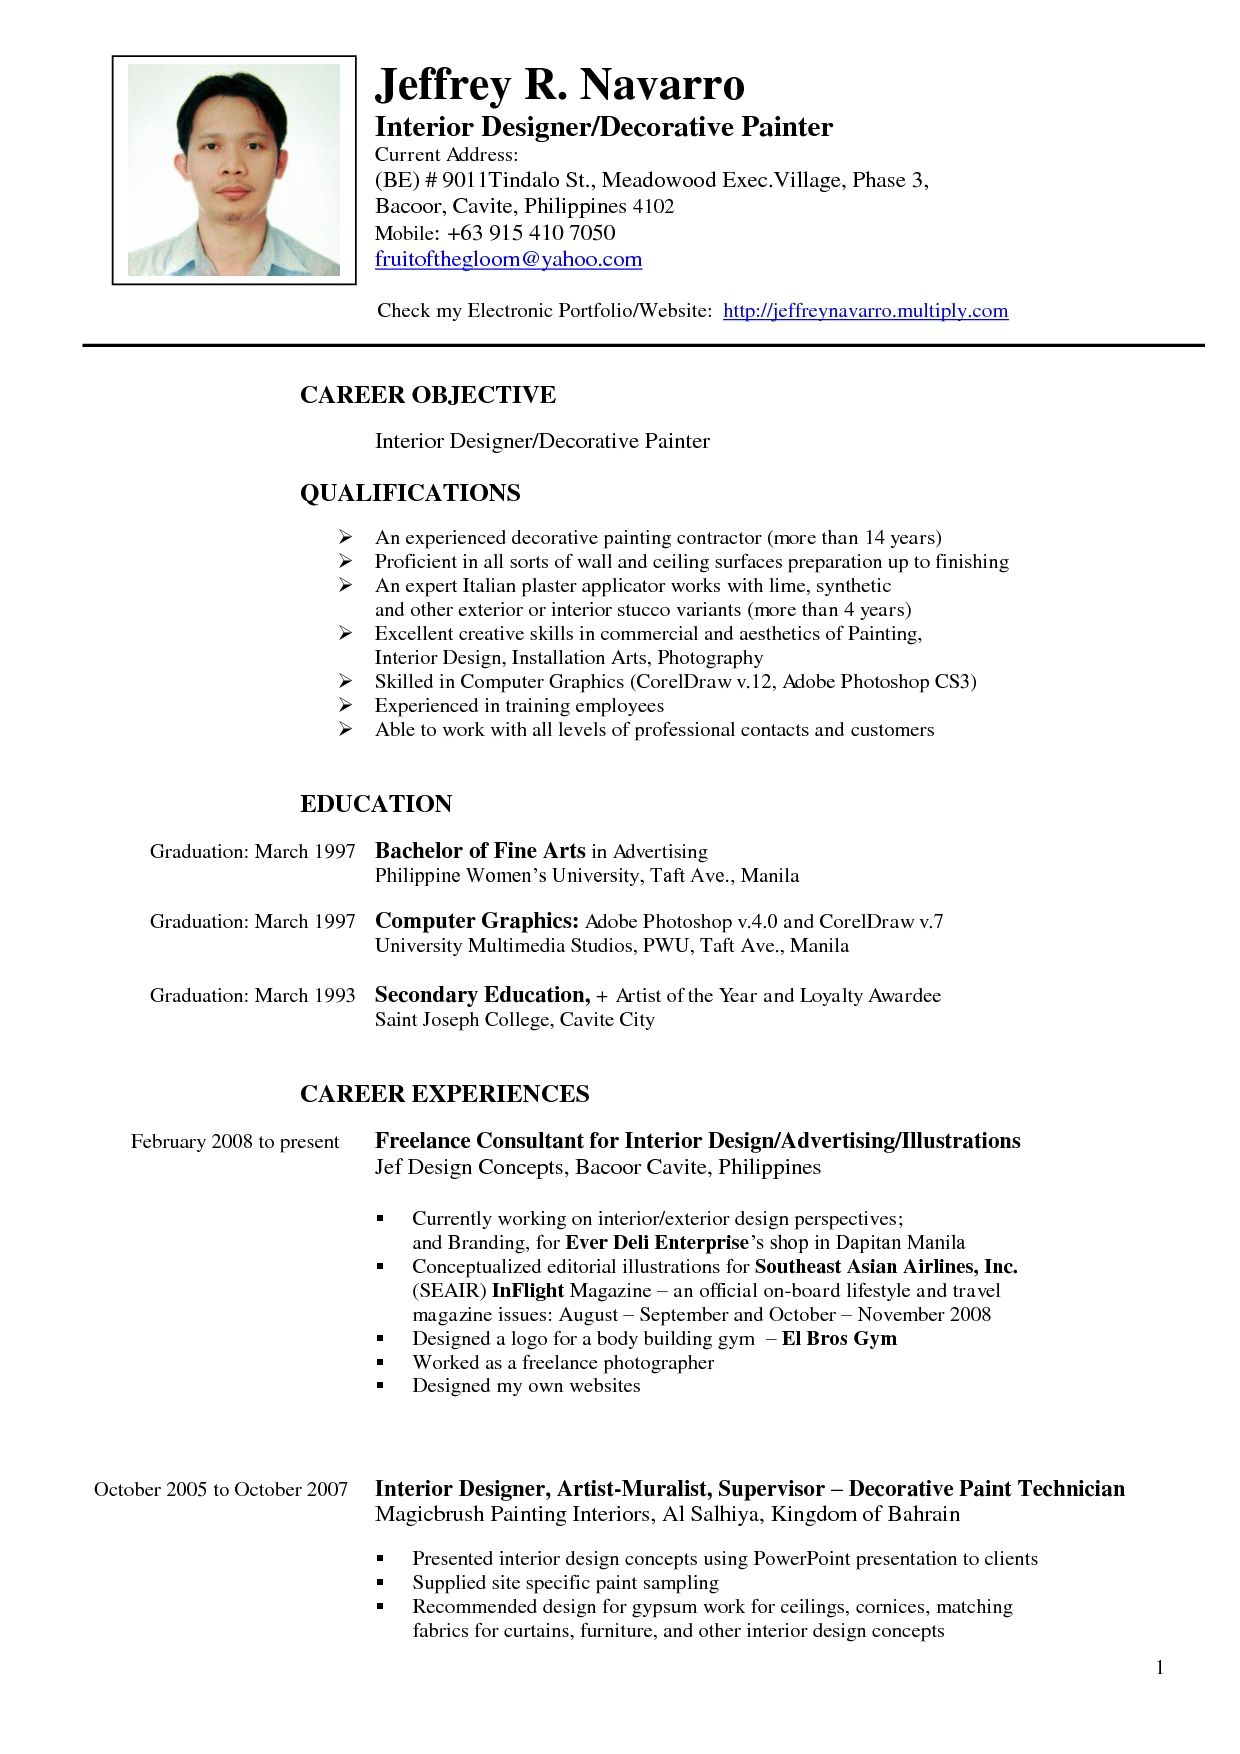 Typical Resume Format Art Gallery Resume Sample Cover Letter Free Artist  Home Design